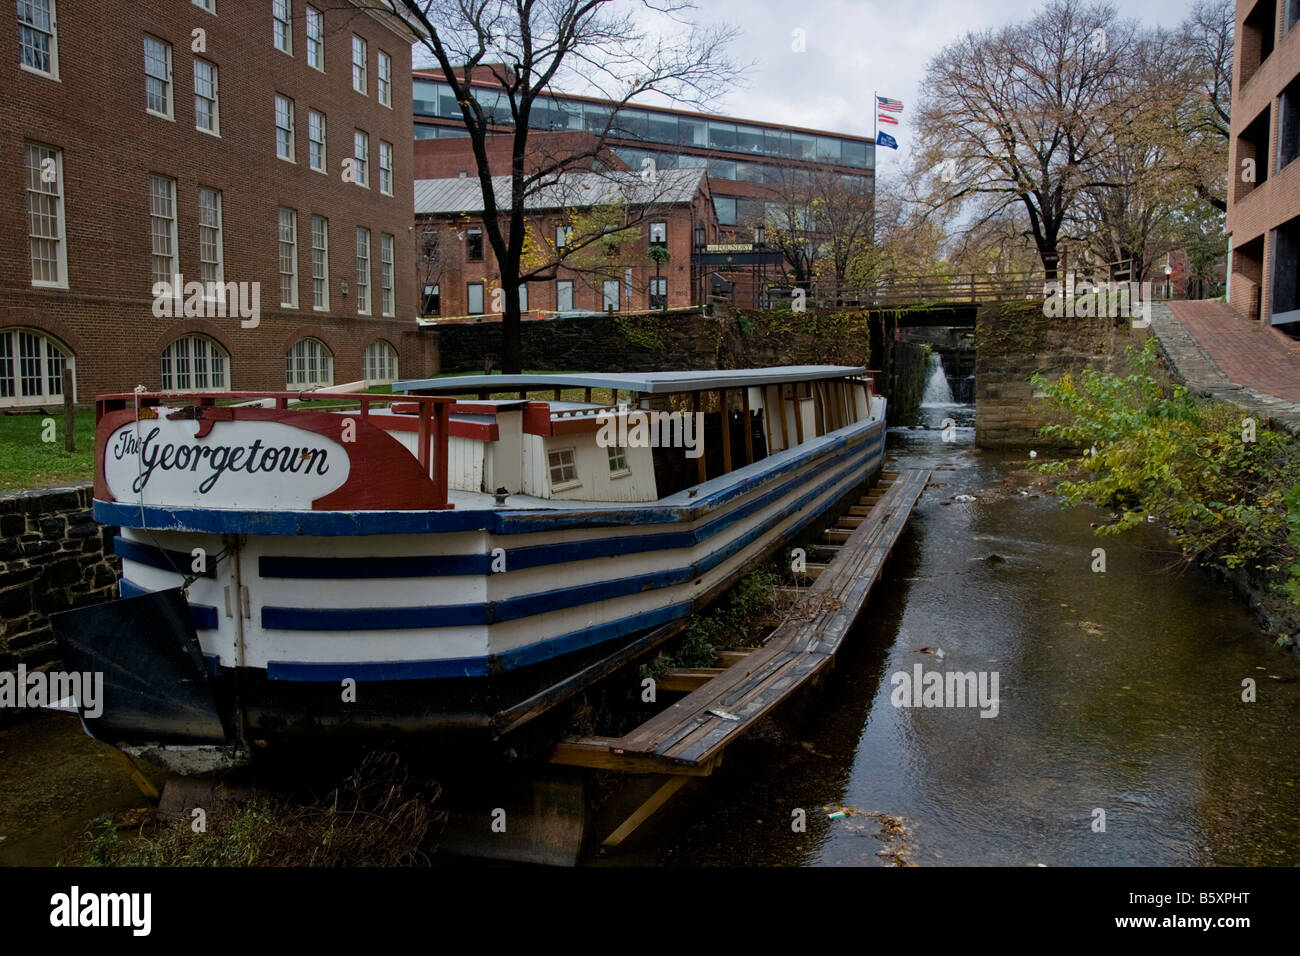 Georgetown barge in the Georgetown towpath - Stock Image